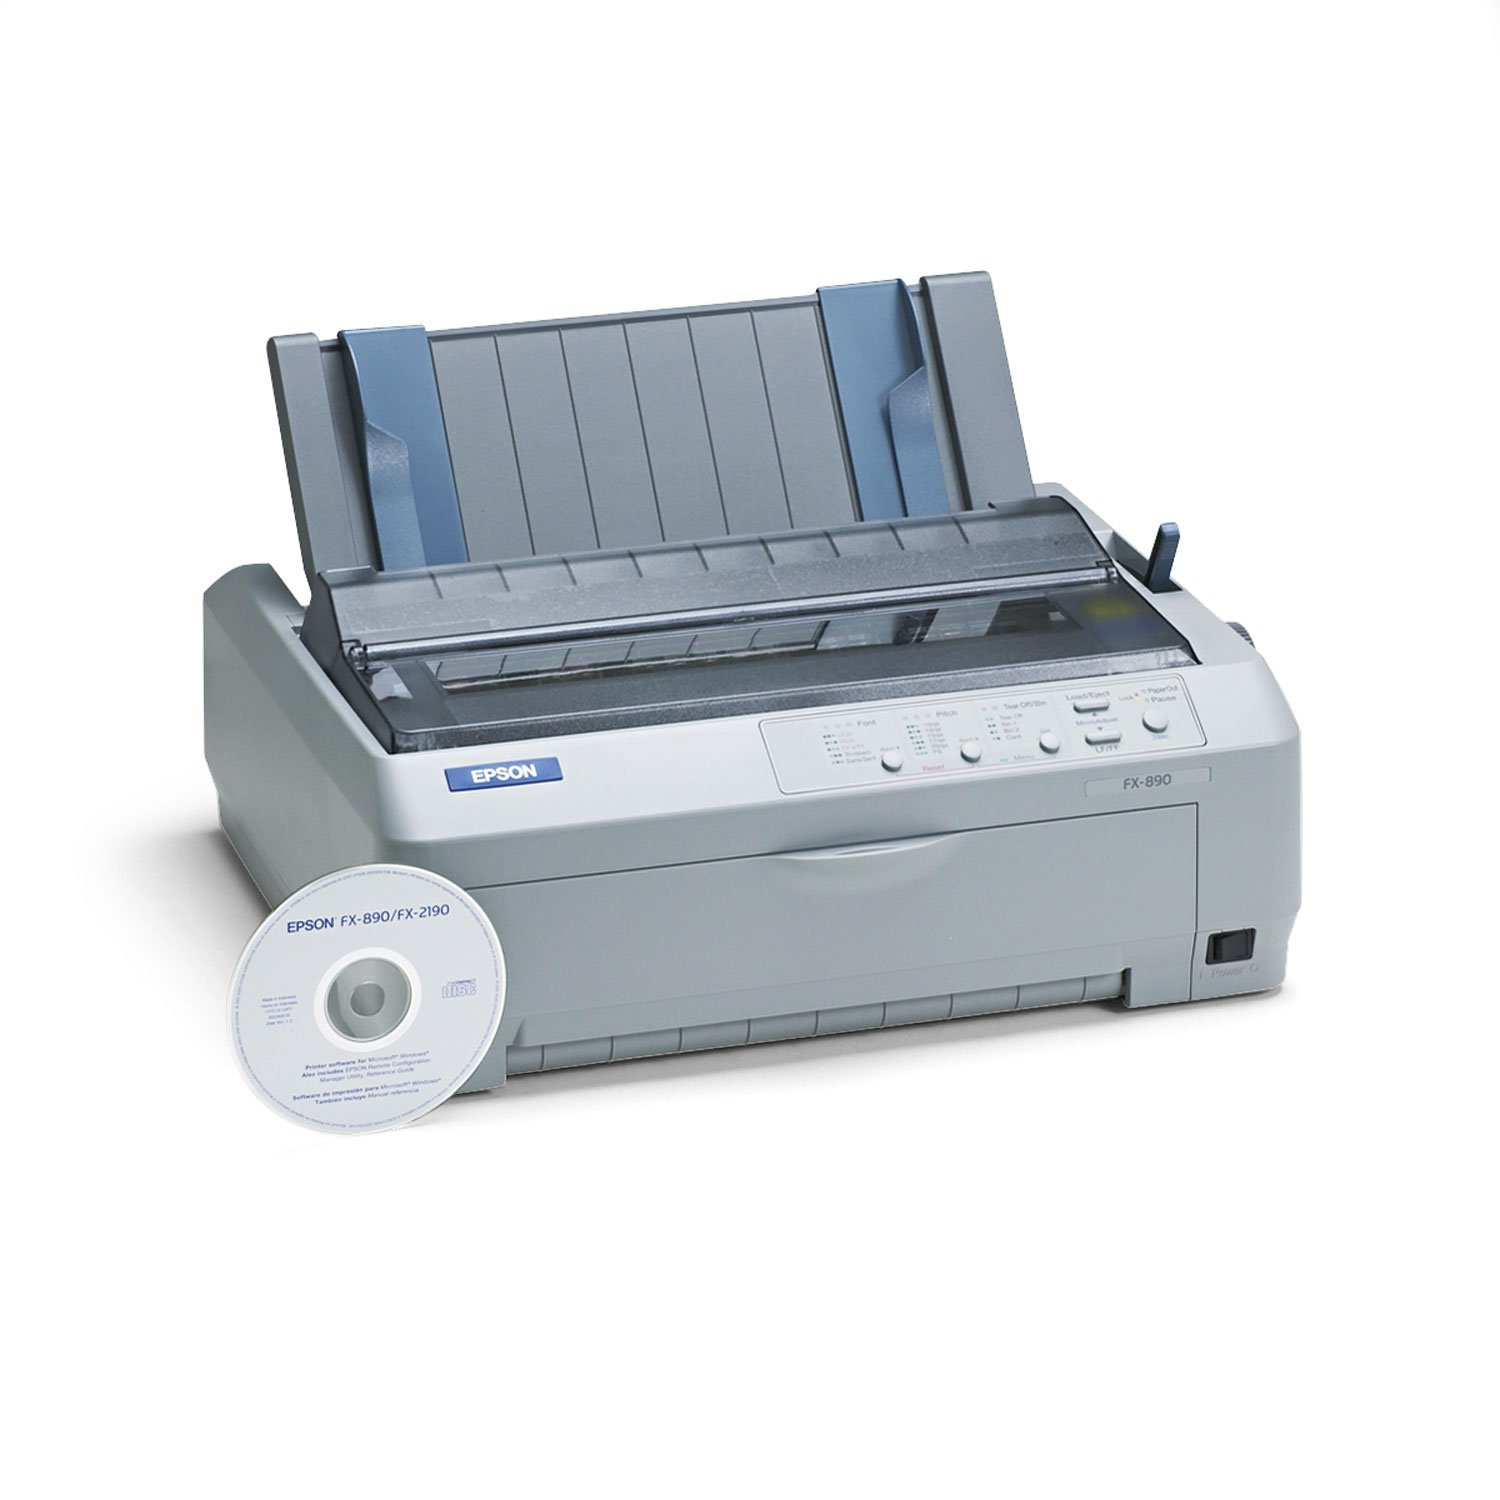 Buy Epson Fx 890 Dot Matrix Printer 780528 By Lq310 Online At Low Prices In India Reviews Ratings